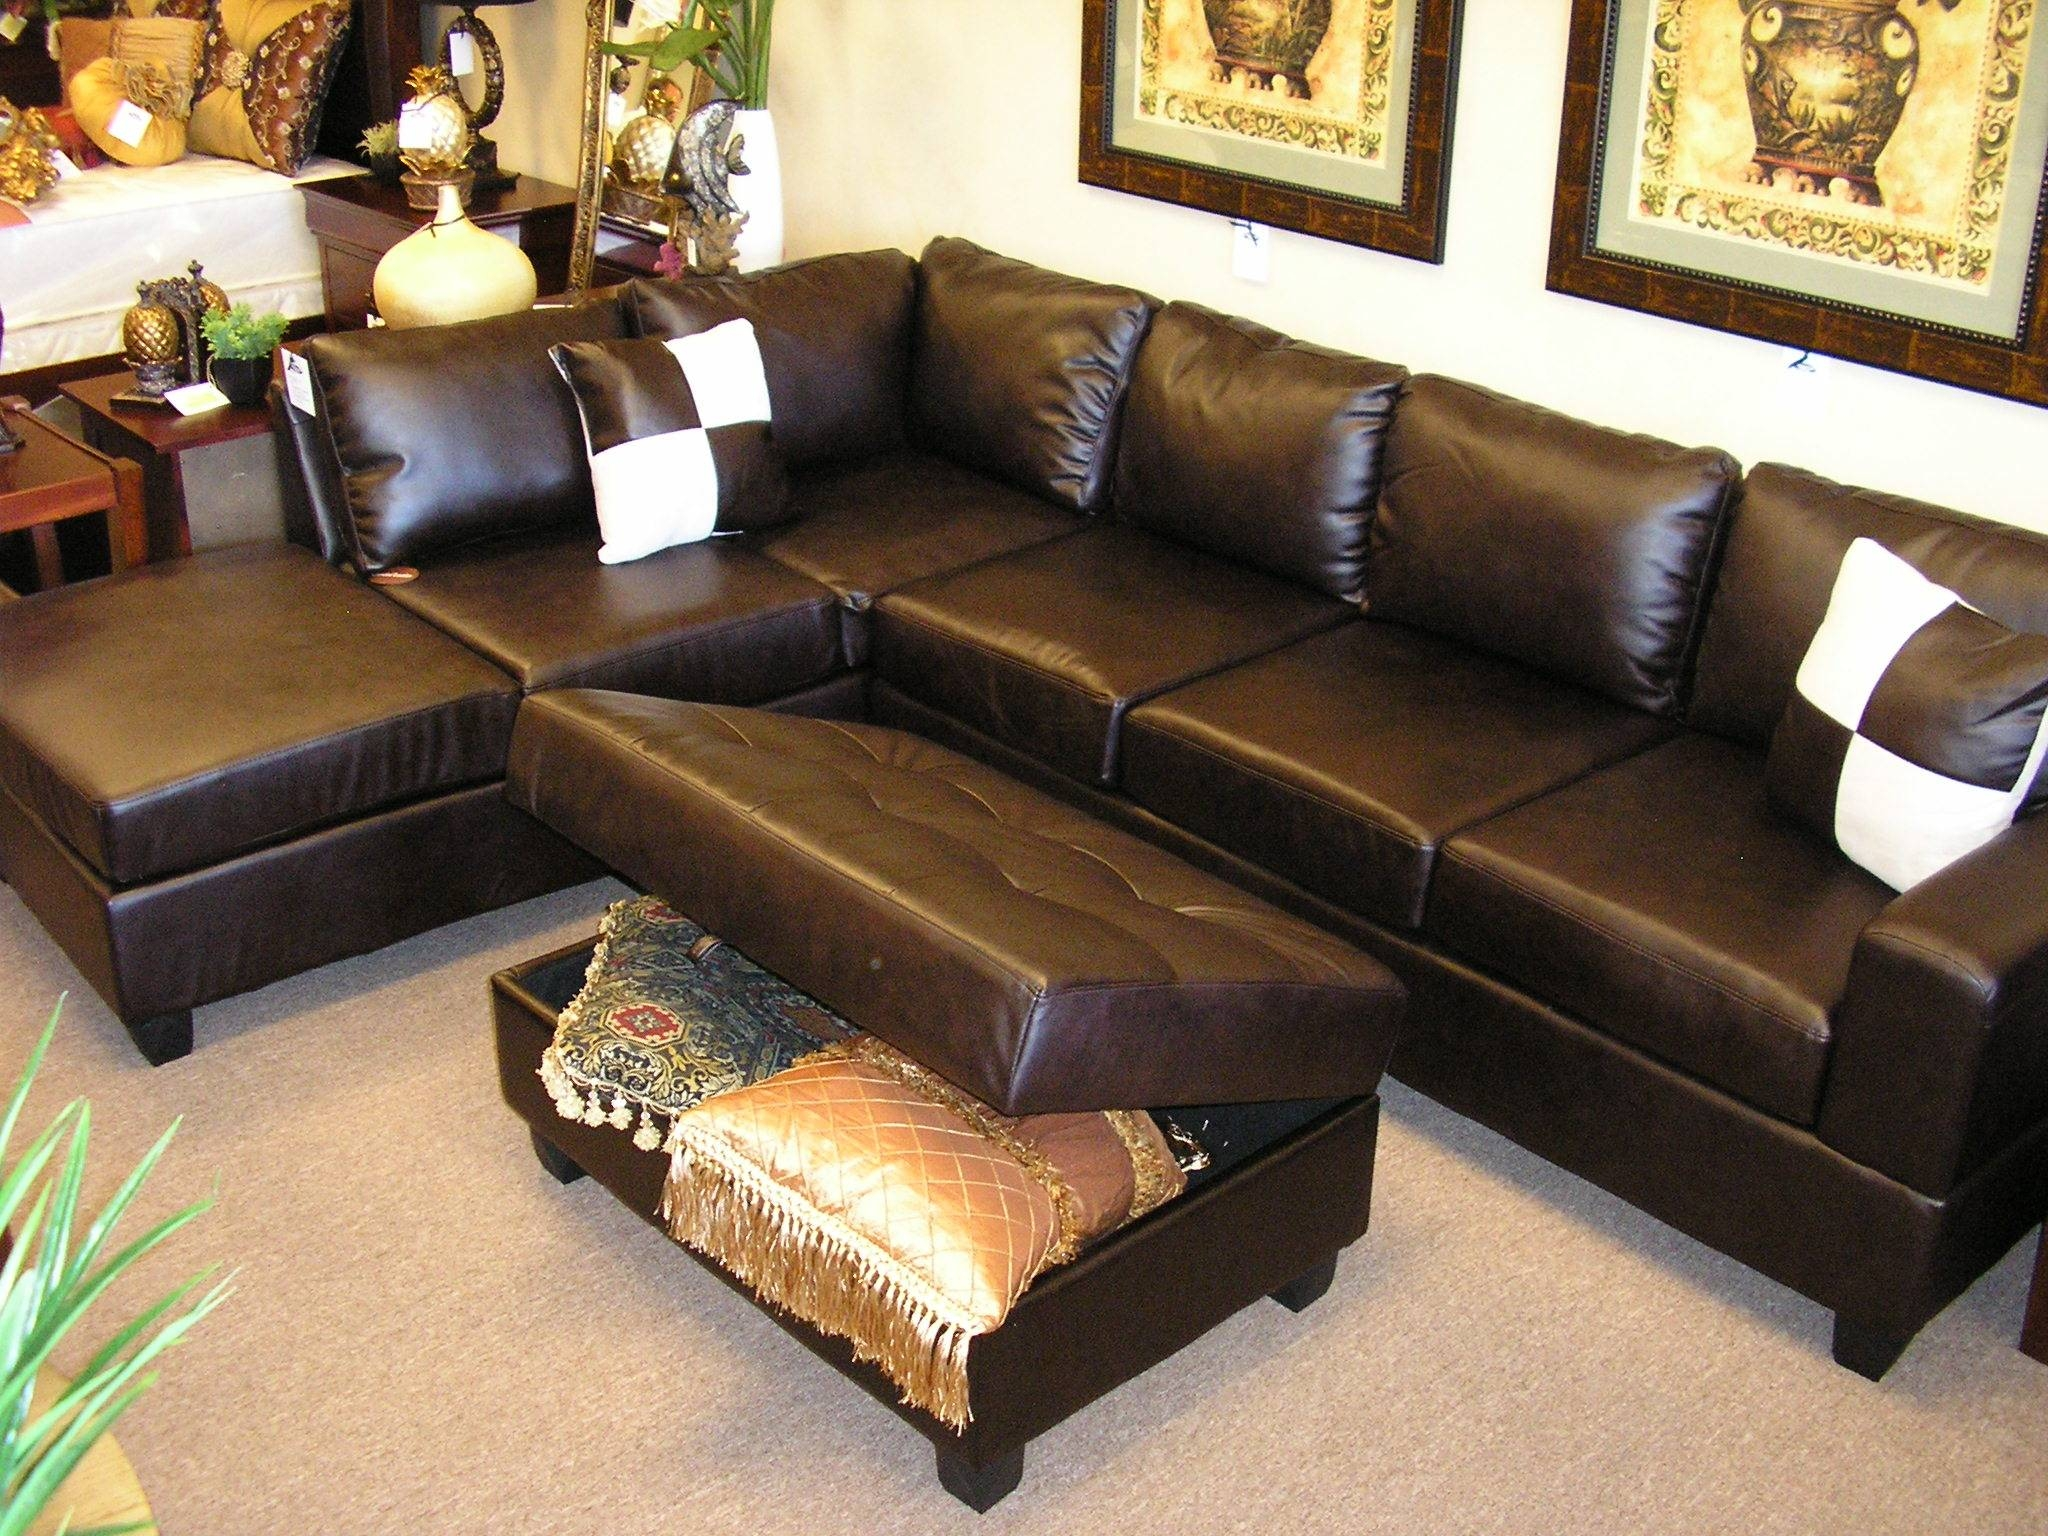 Oversized Sectional Sofas Leather | Tehranmix Decoration within Leather Storage Sofas (Image 16 of 30)